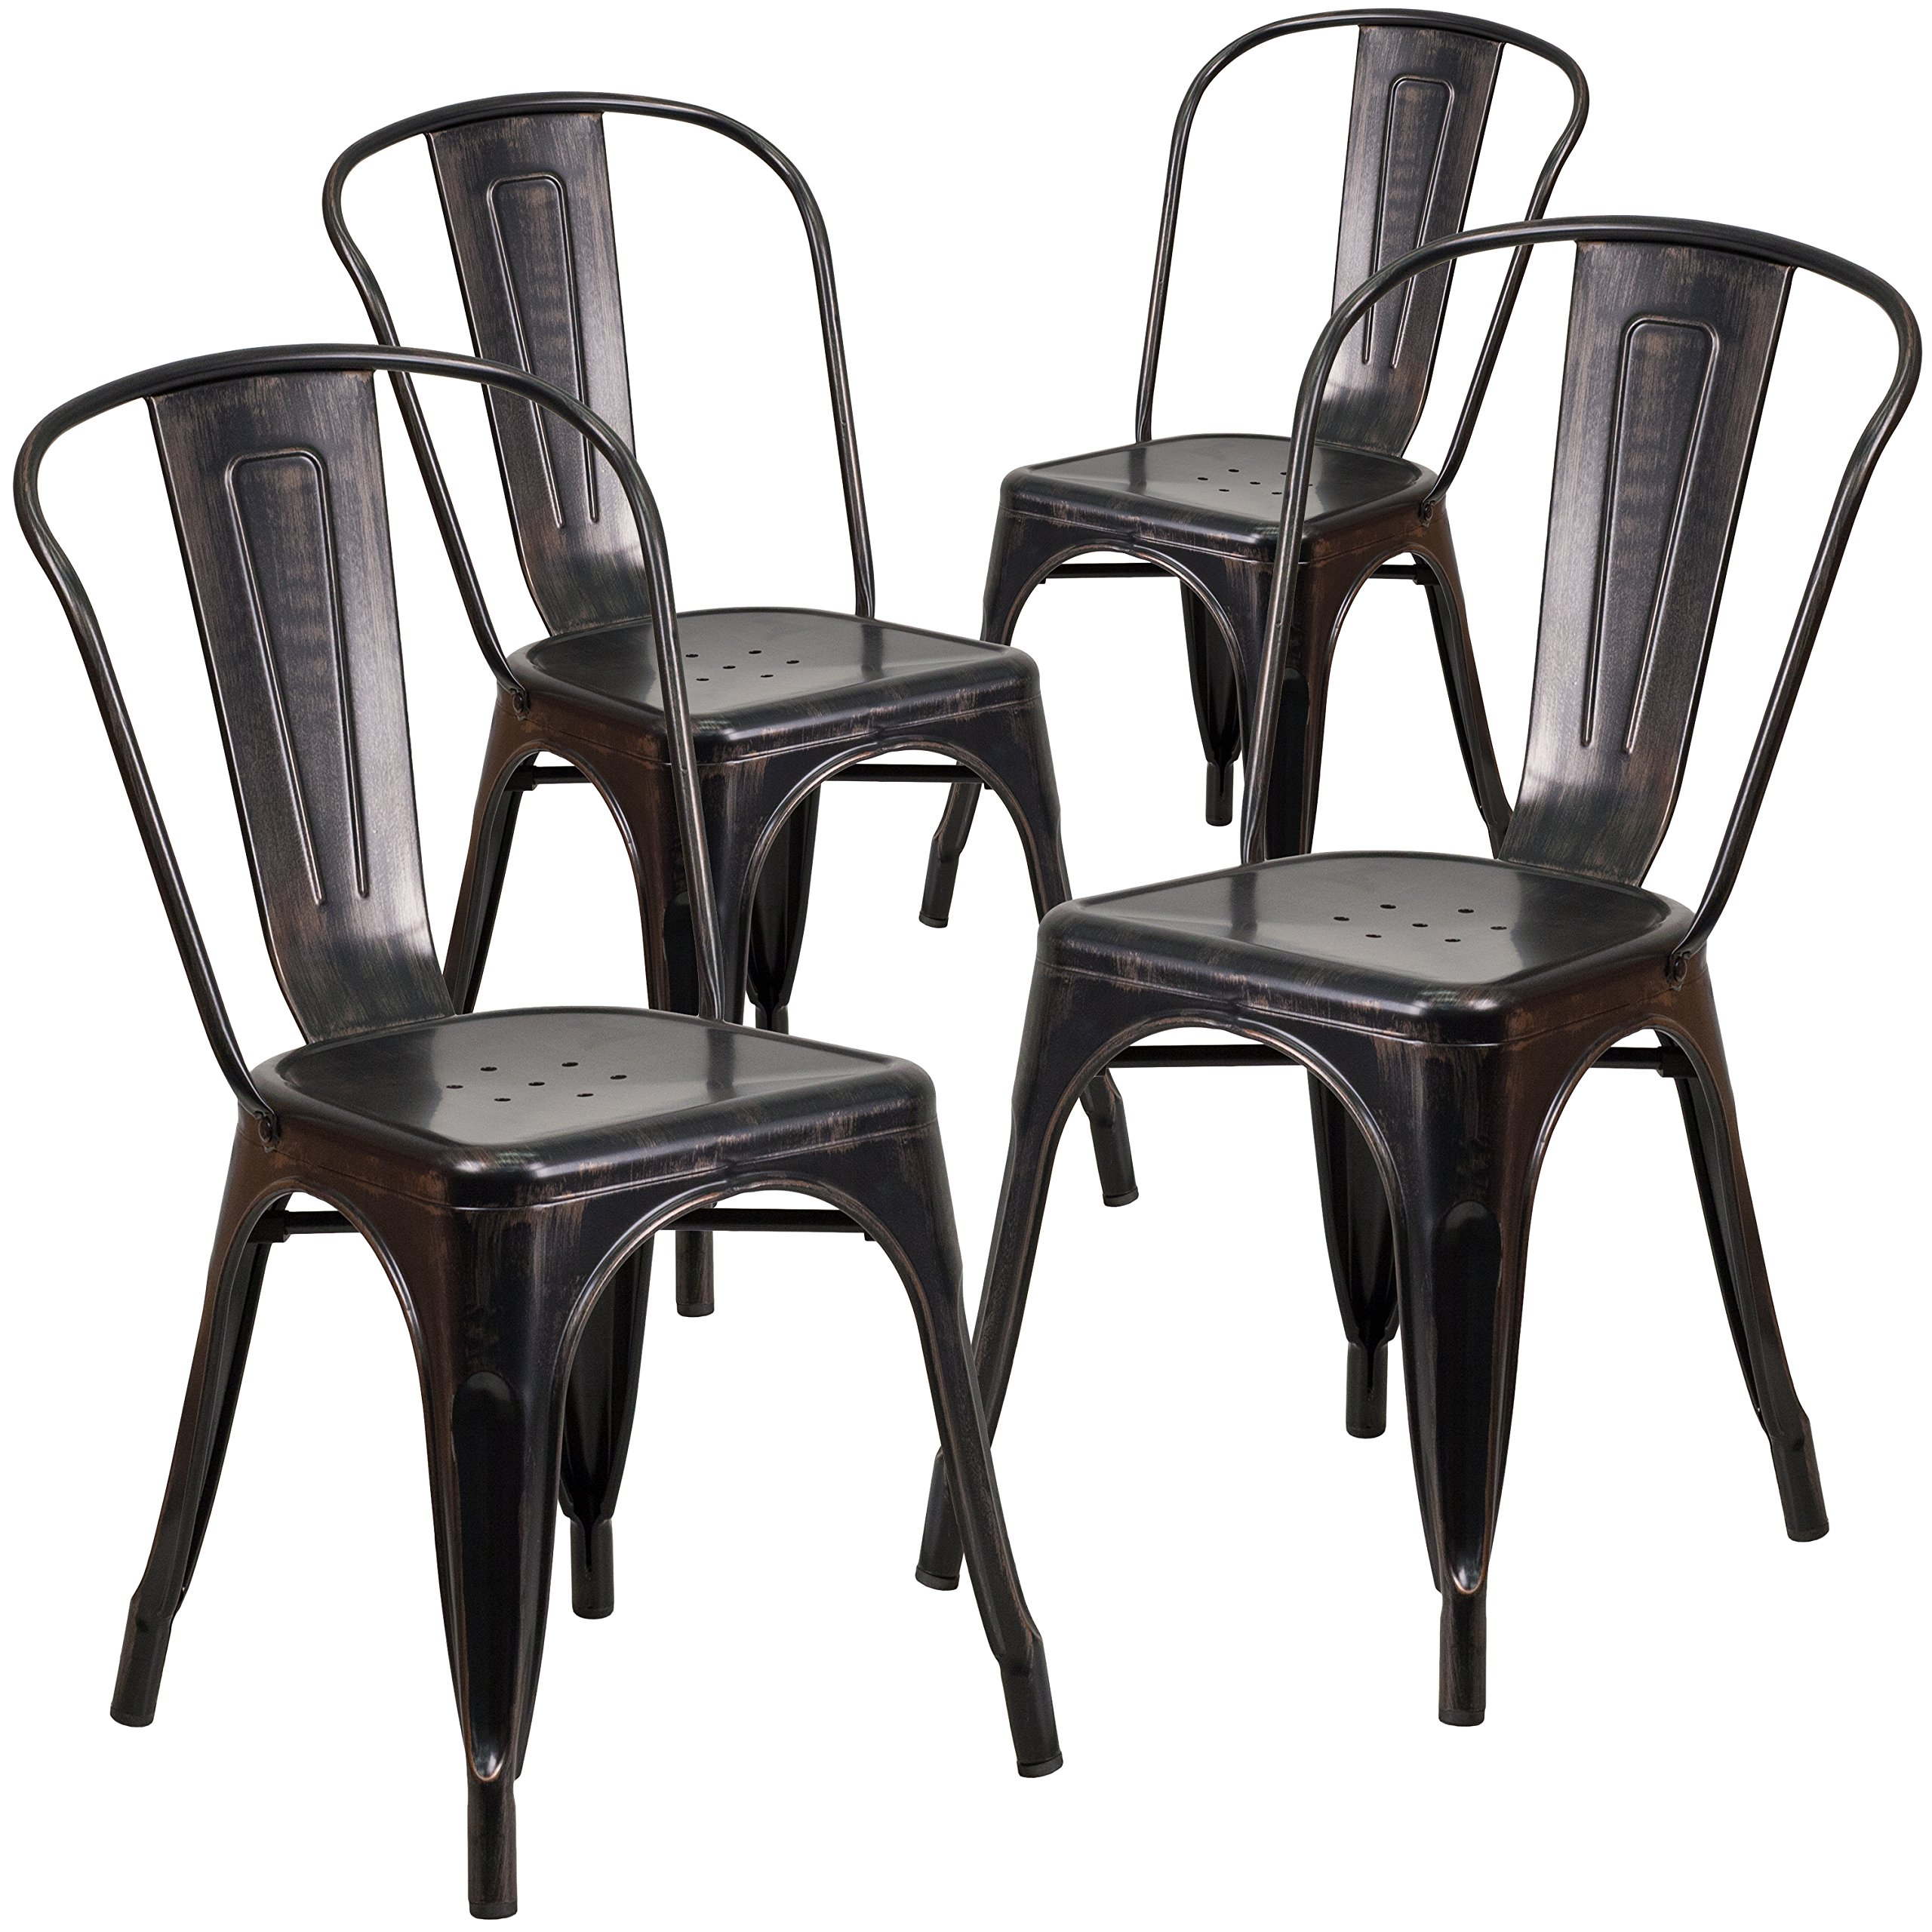 Flash Furniture 4 Pk. Black-Antique Gold Metal Indoor-Outdoor Stackable Chair by Flash Furniture